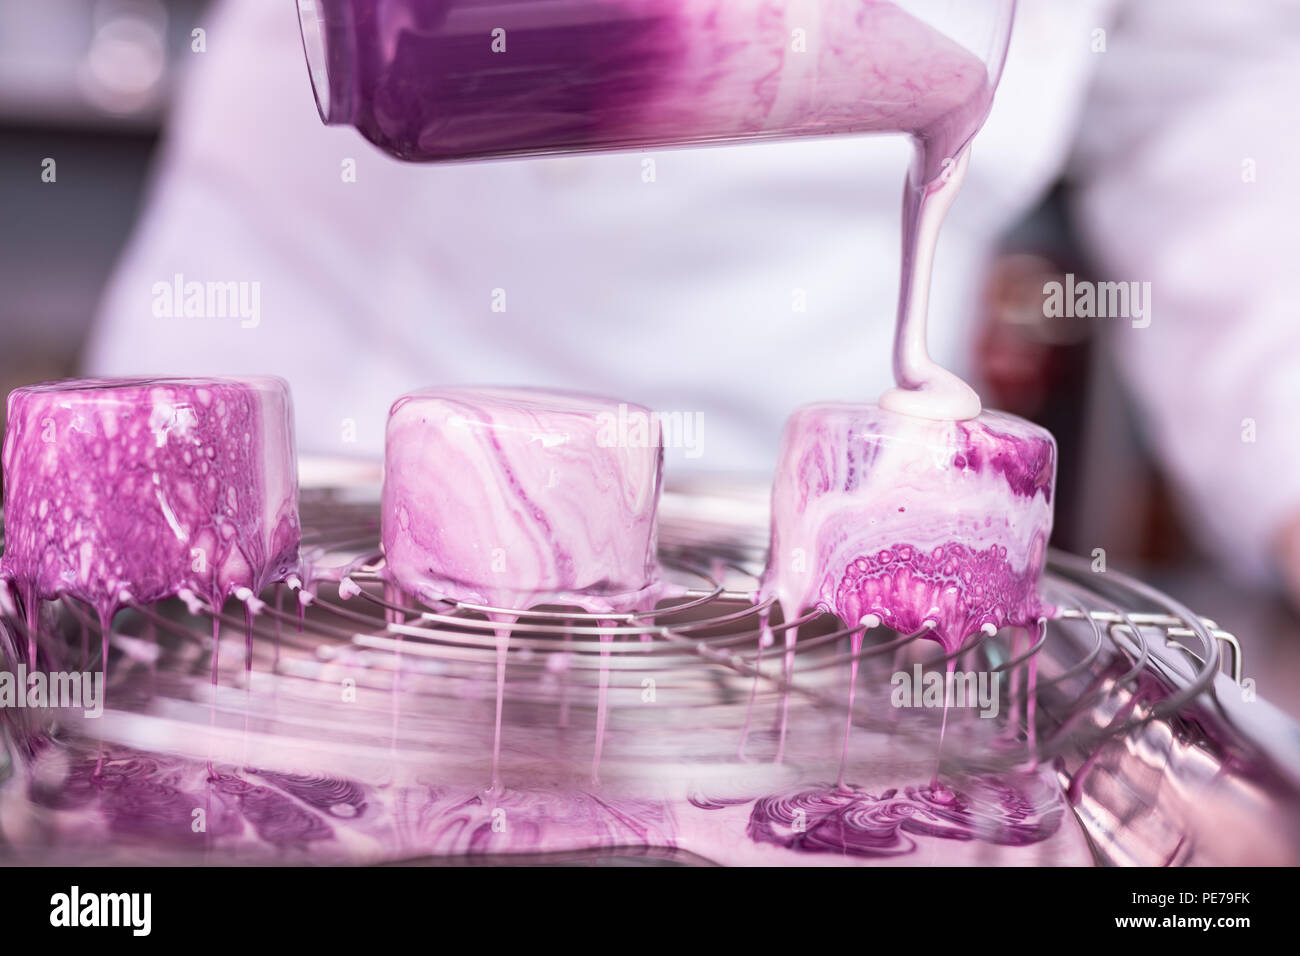 Master of confectionary finishing her extraordinary blueberry cakes - Stock Image